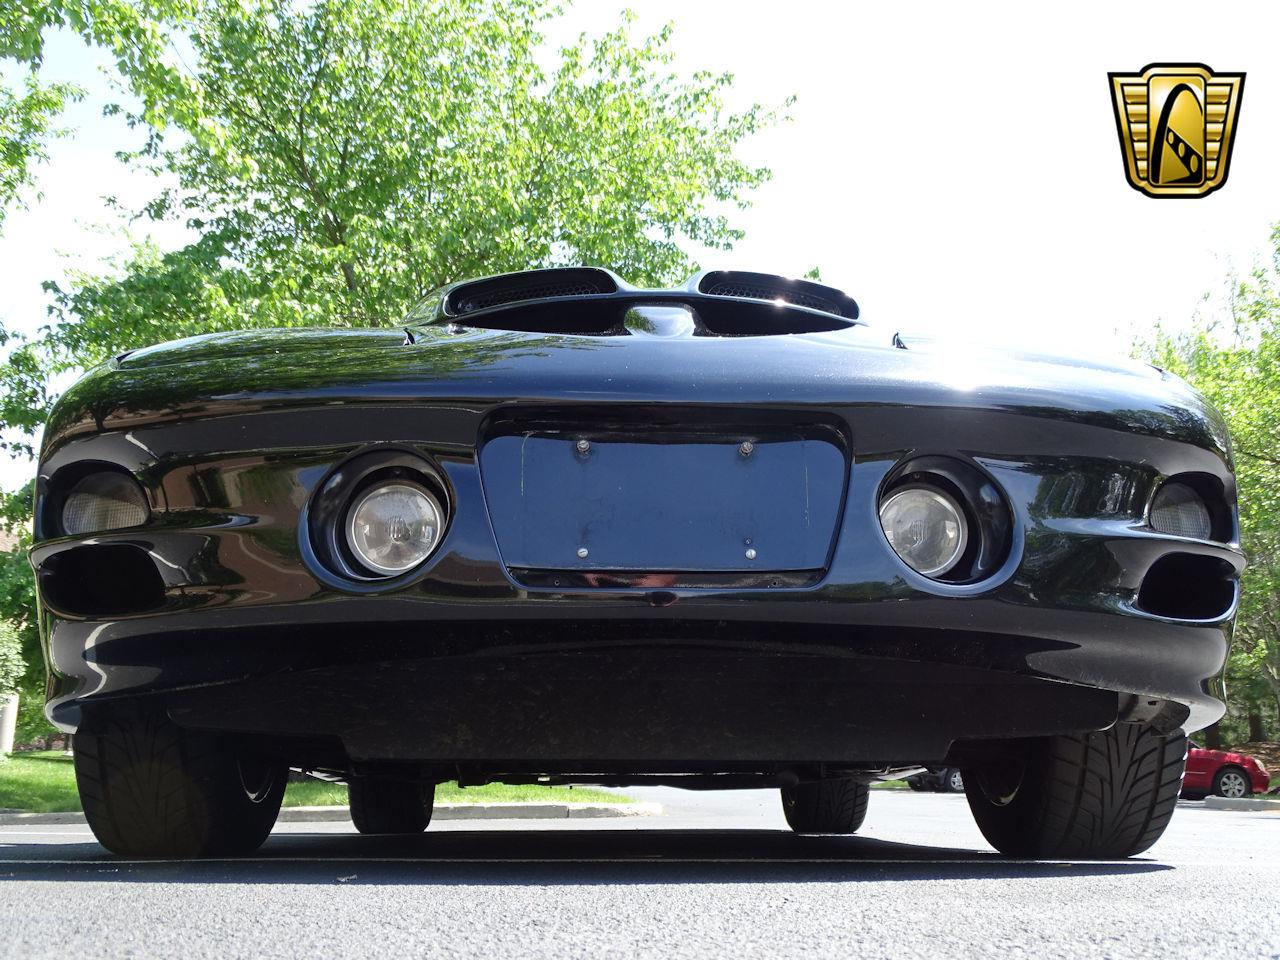 Large Picture of '00 Firebird located in West Deptford New Jersey Offered by Gateway Classic Cars - Philadelphia - M5ID